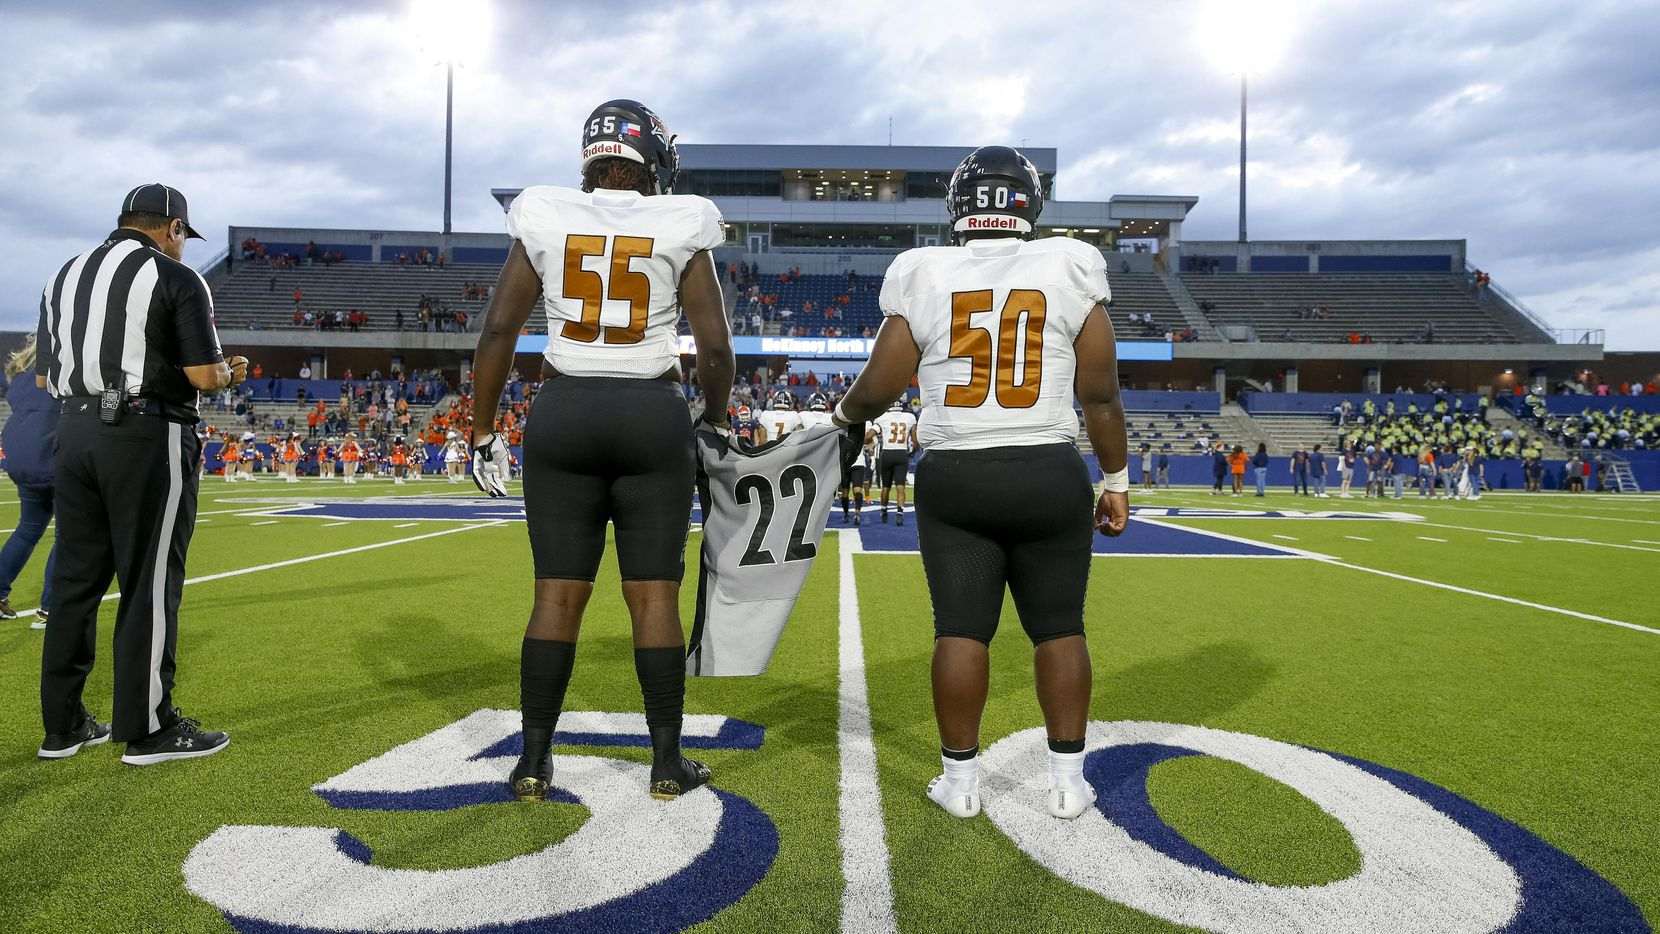 West Mesquite's Donovan Hawthorne (50) and Trey Mitchell (55) hold a number 22 jersey in honor of former West Mesquite football player Aaron Lowe before a game against McKinney North at McKinney ISD Stadium on Thursday, Sept. 30, 2021, in Mckinney, Texas. Lowe was shot and killed on Sept. 26 in Salt Lake City, Utah. Lowe attended the University of Utah and played defensive back for the Utes. (Elias Valverde II/The Dallas Morning News)